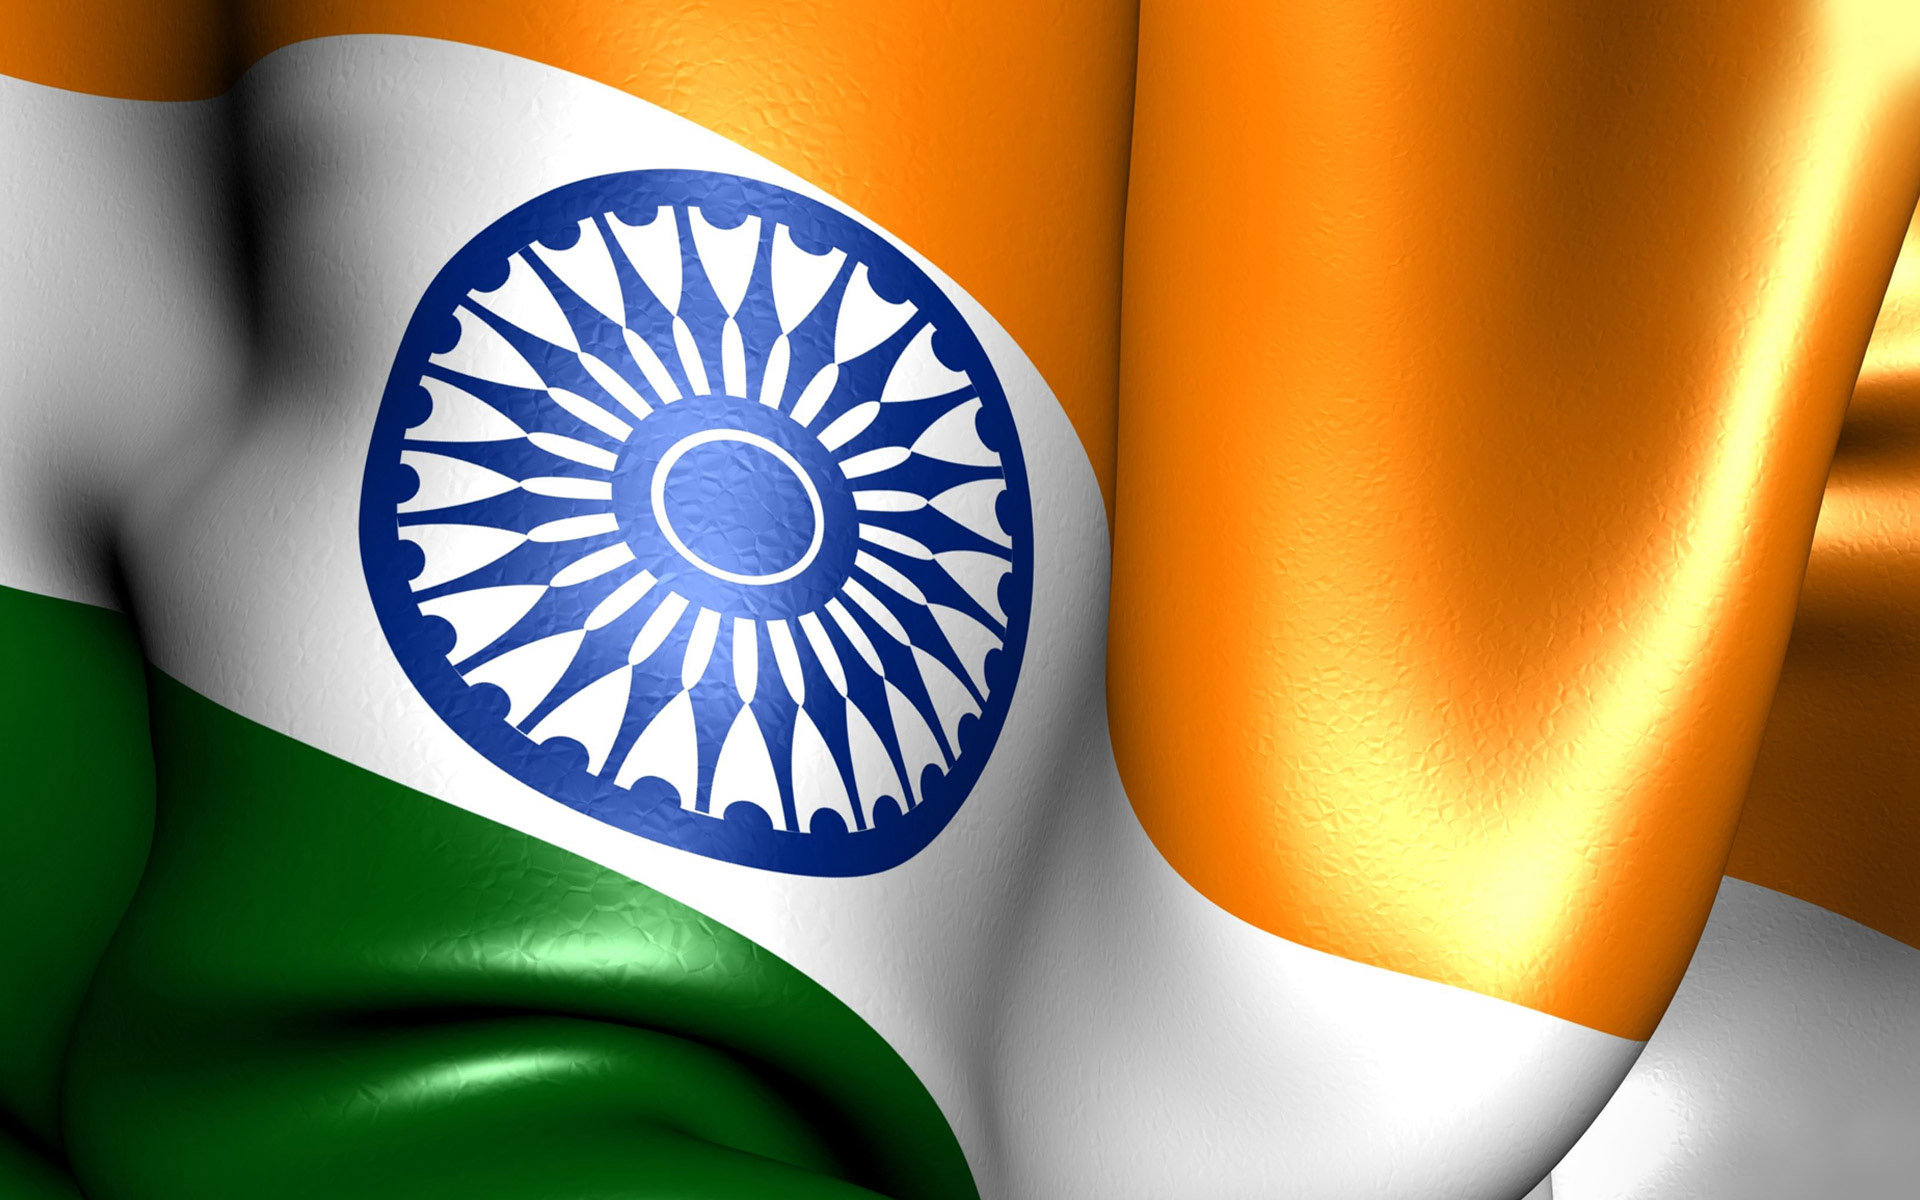 India independence day wallpaper 6 responsive for India wallpaper 3d